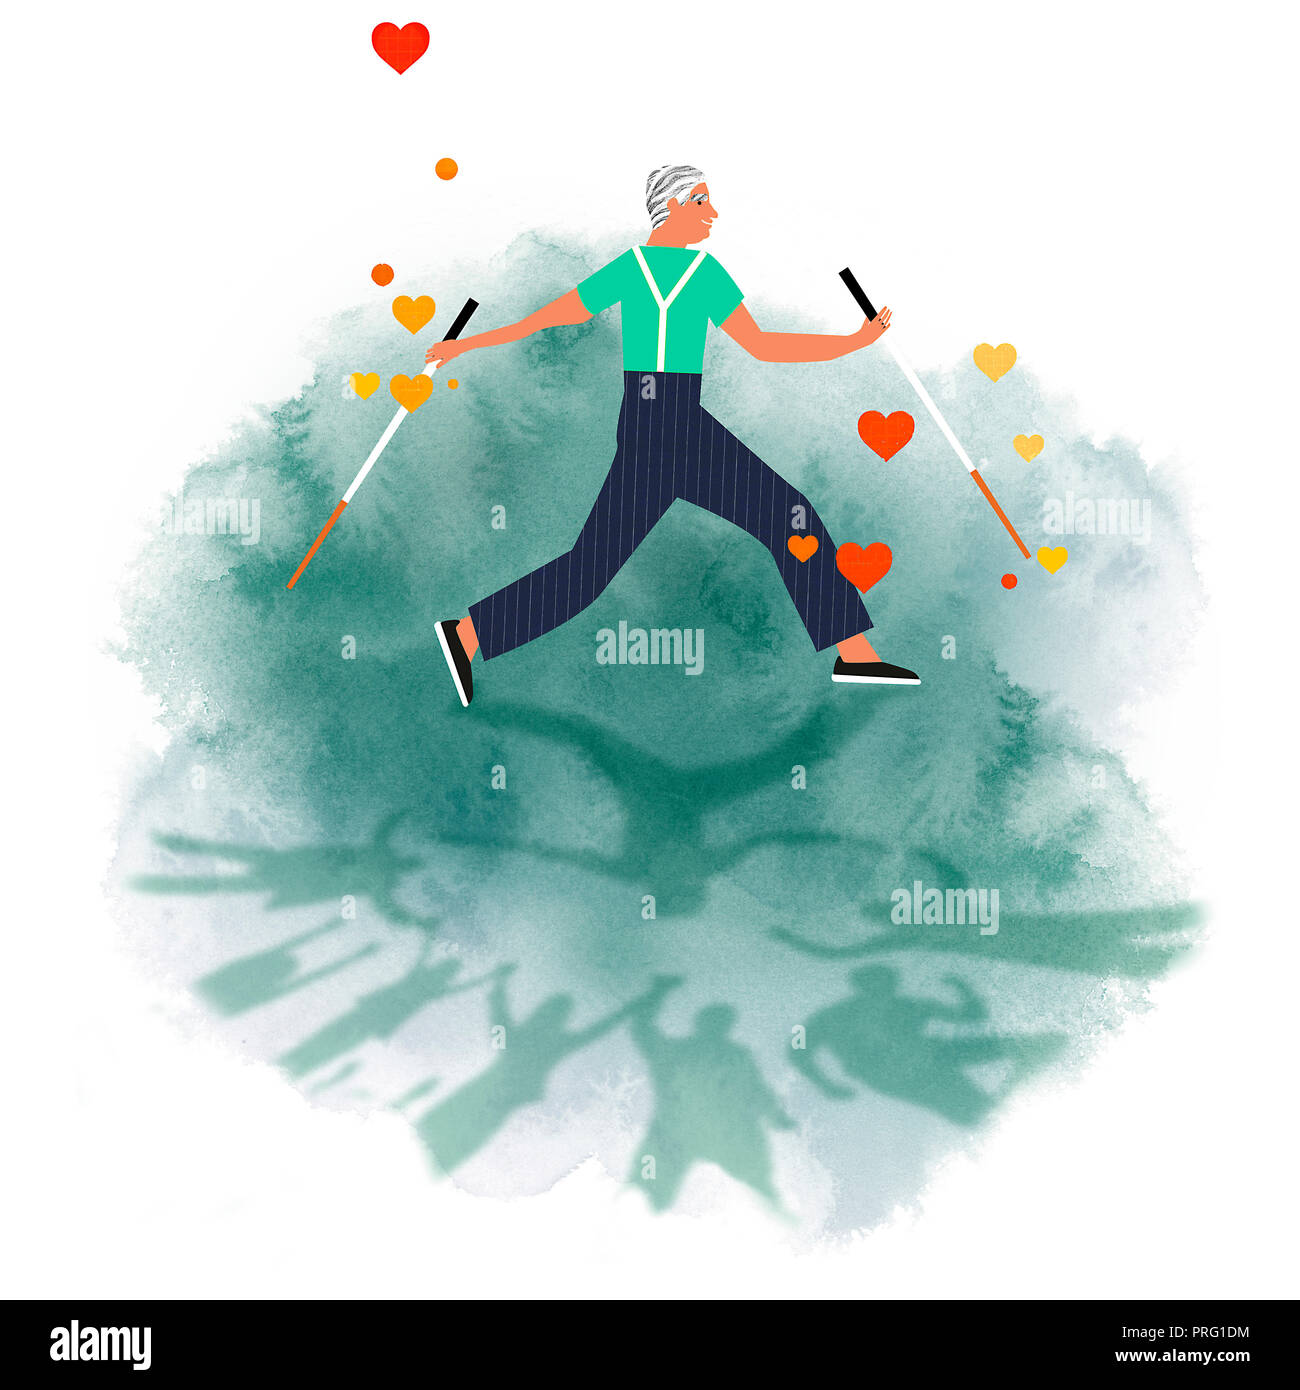 healthy old man walking with nordic sticks surrounded by family - Stock Image